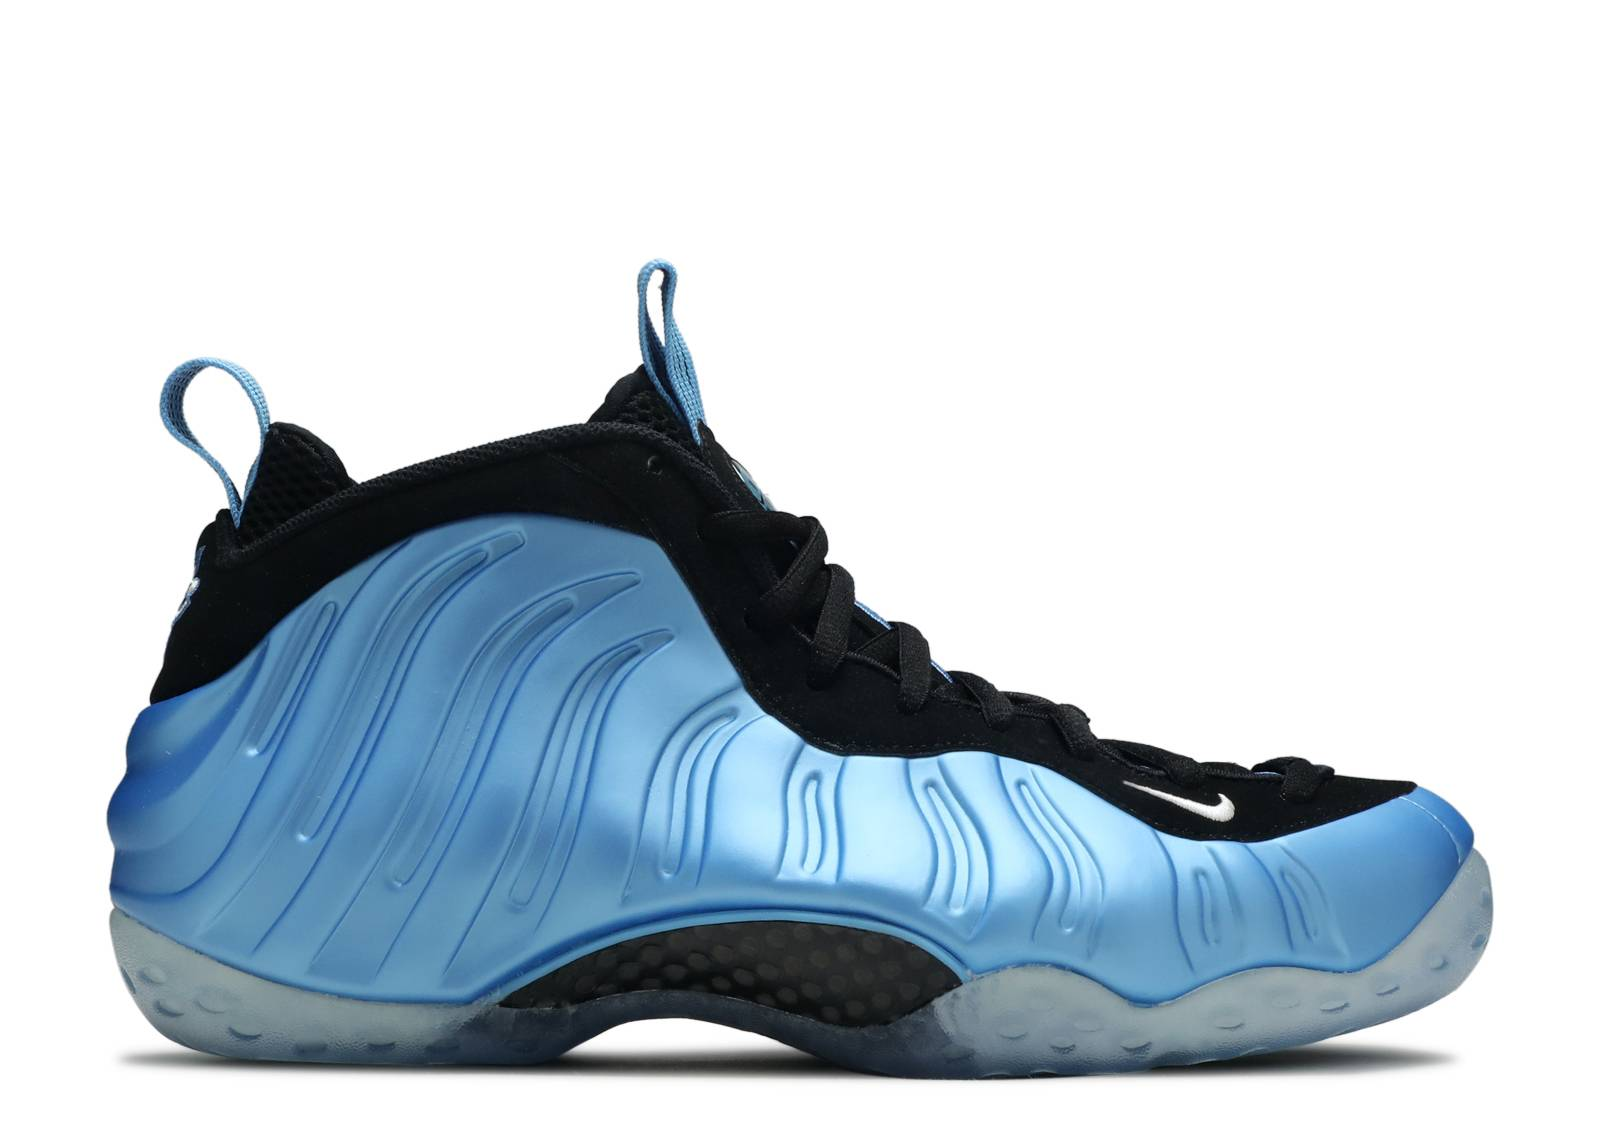 timeless design 1133b 9960c nike. air foamposite one